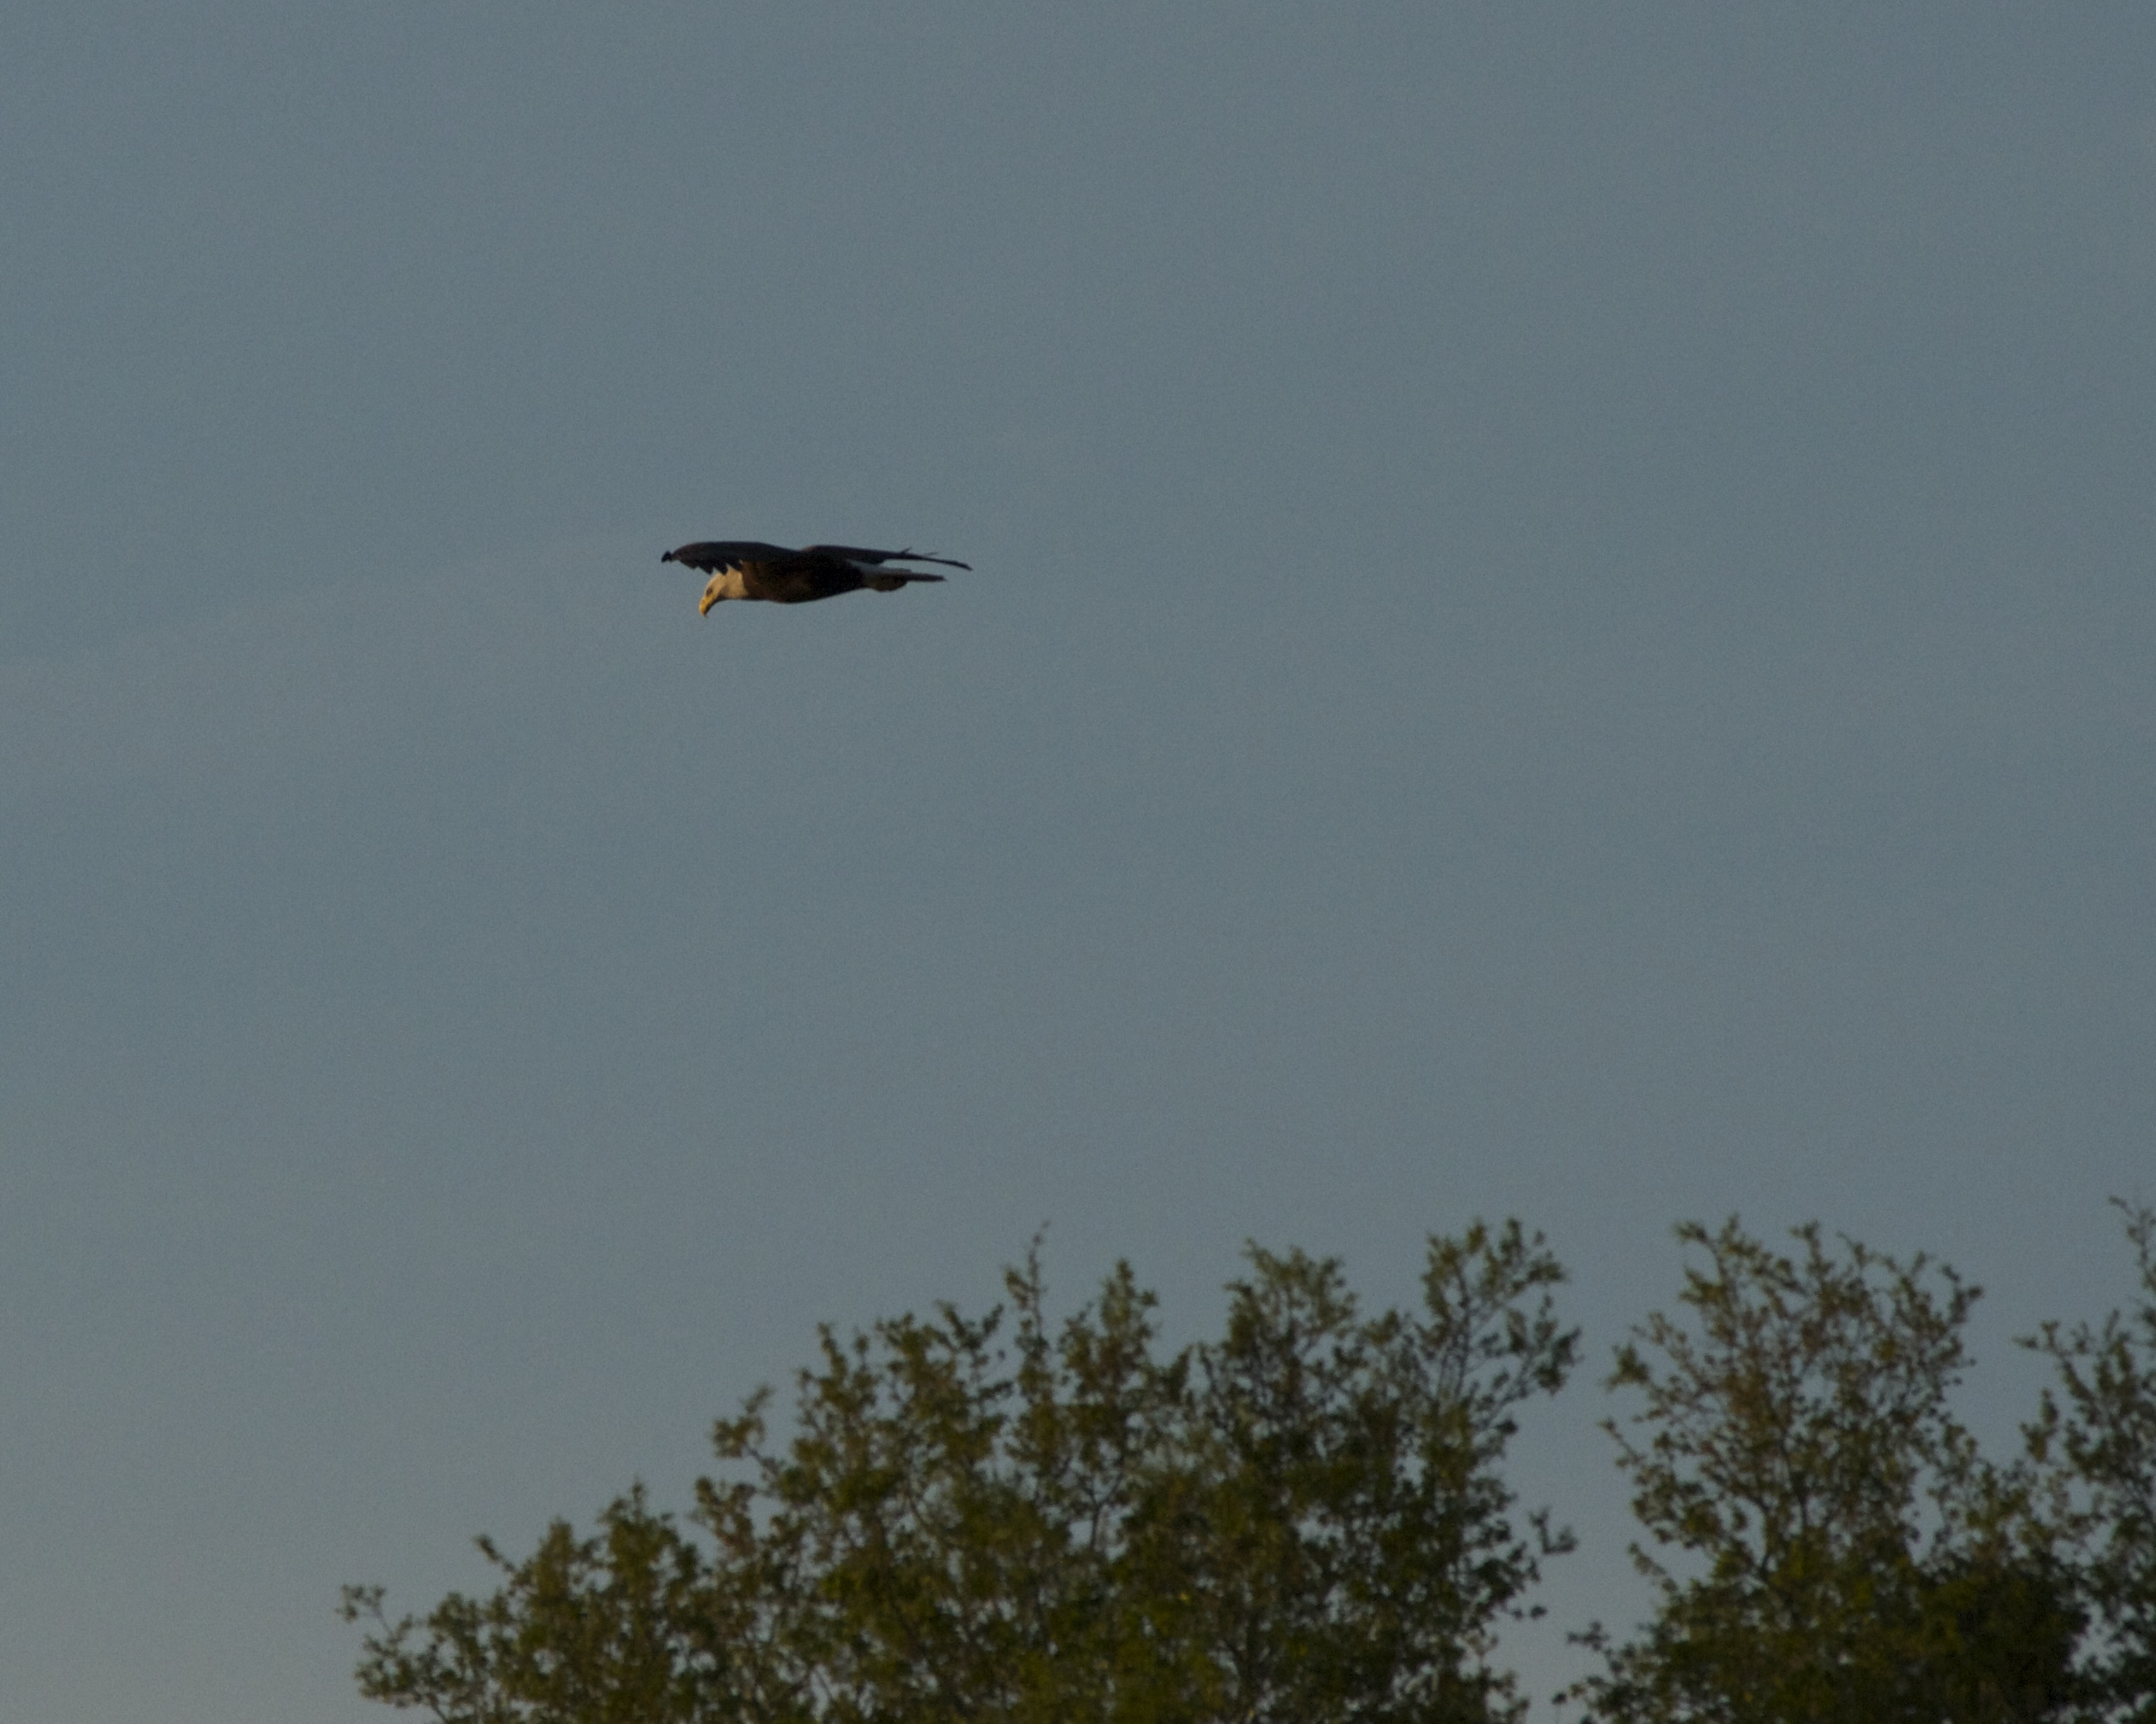 The eagle glides over the Broward.